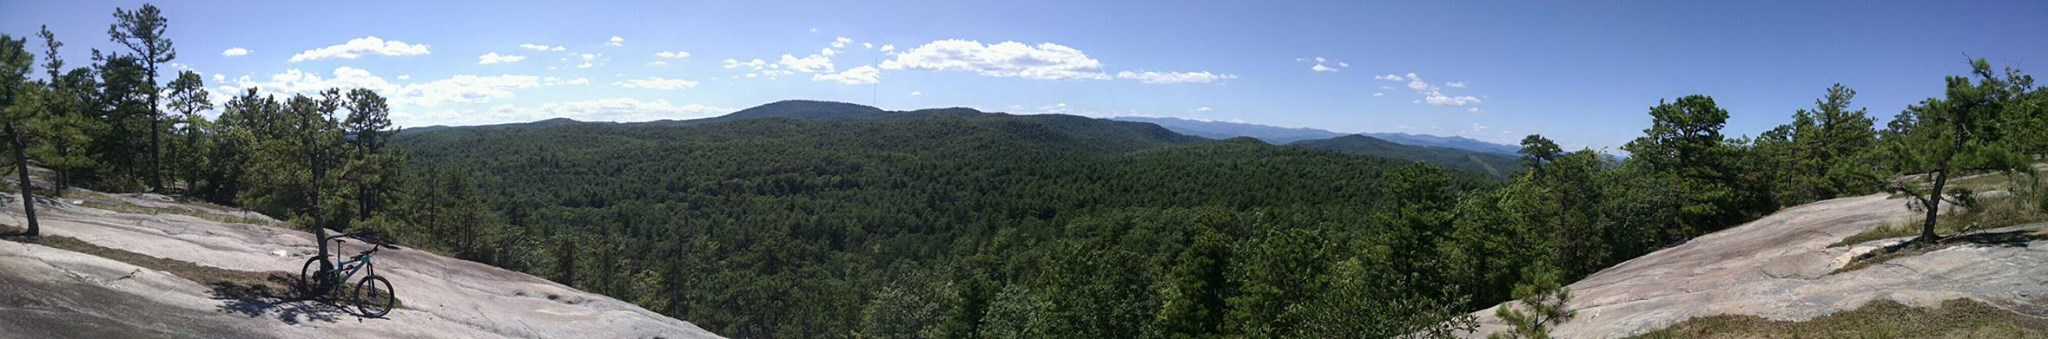 Overlook from one of the many Peaks in DuPont State Park